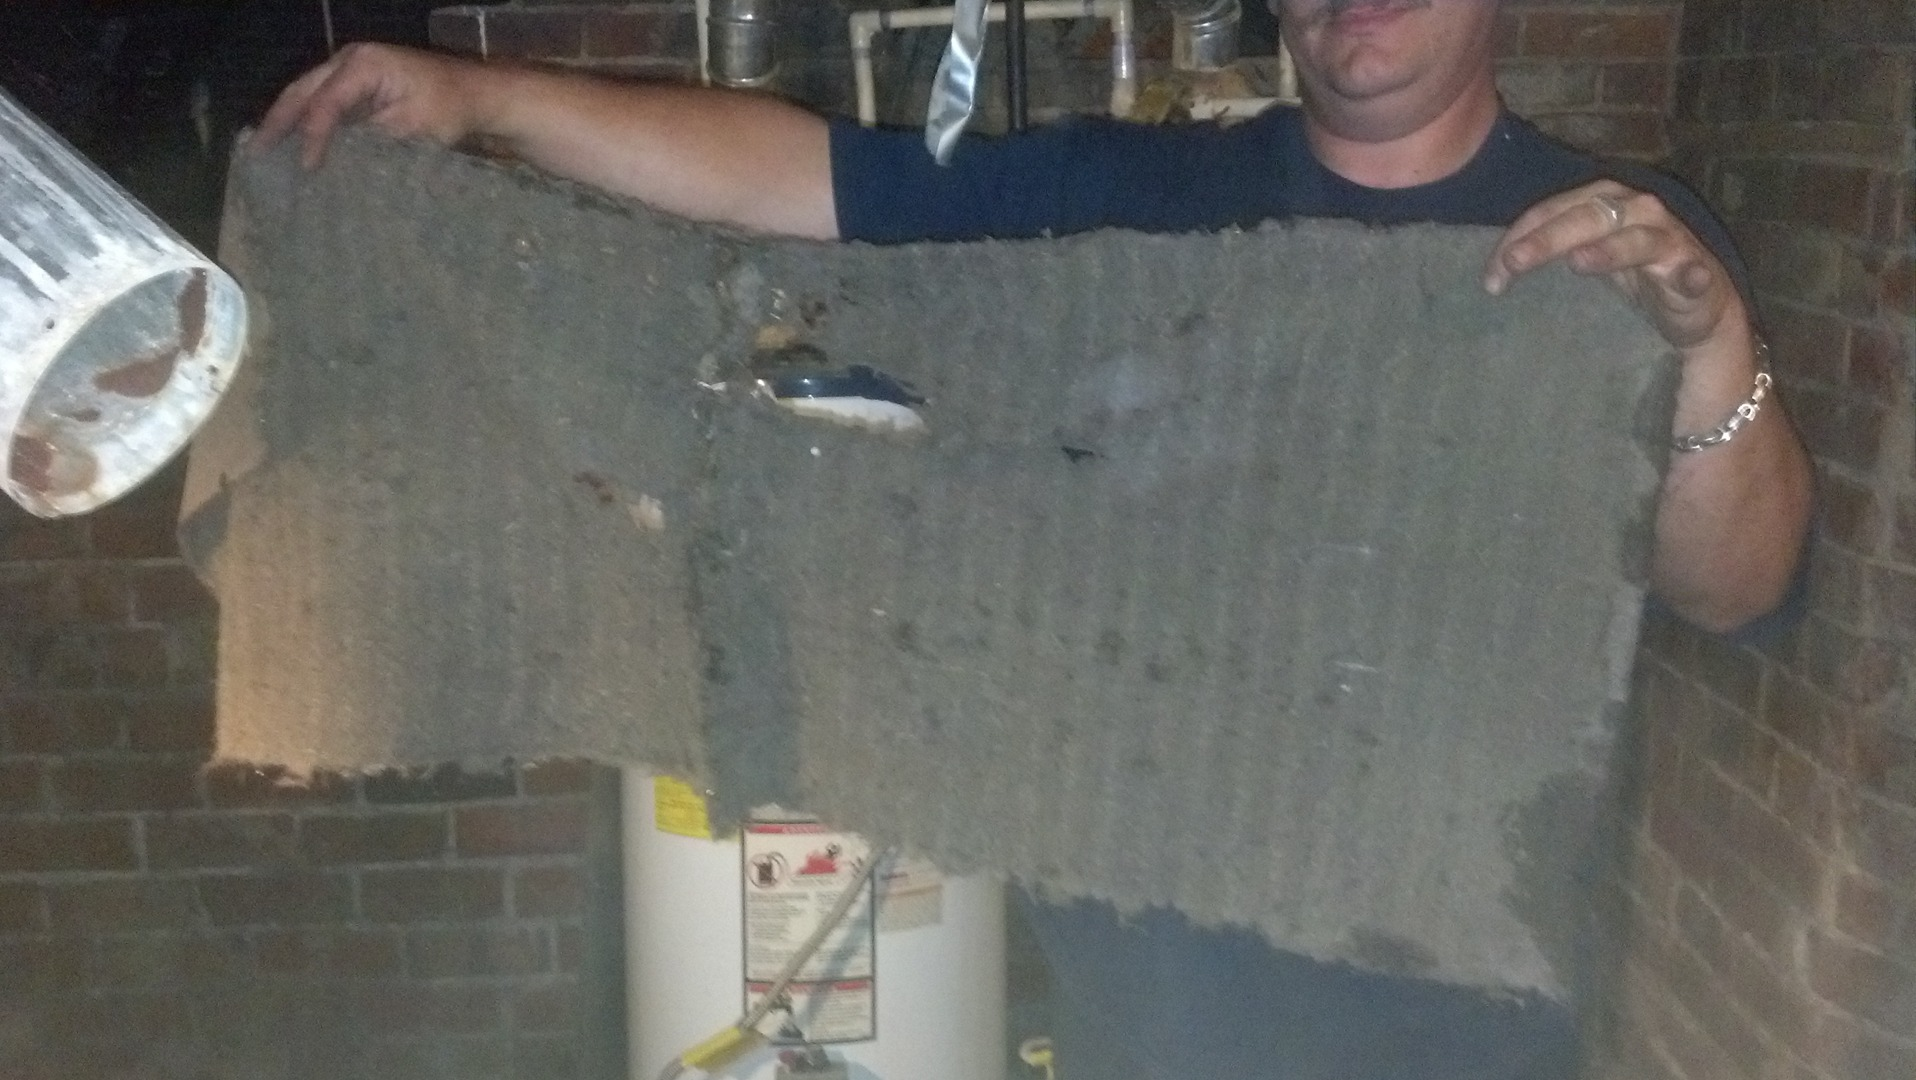 Annual Service will prevent this! (Your coil should NOT have a fur coat!)